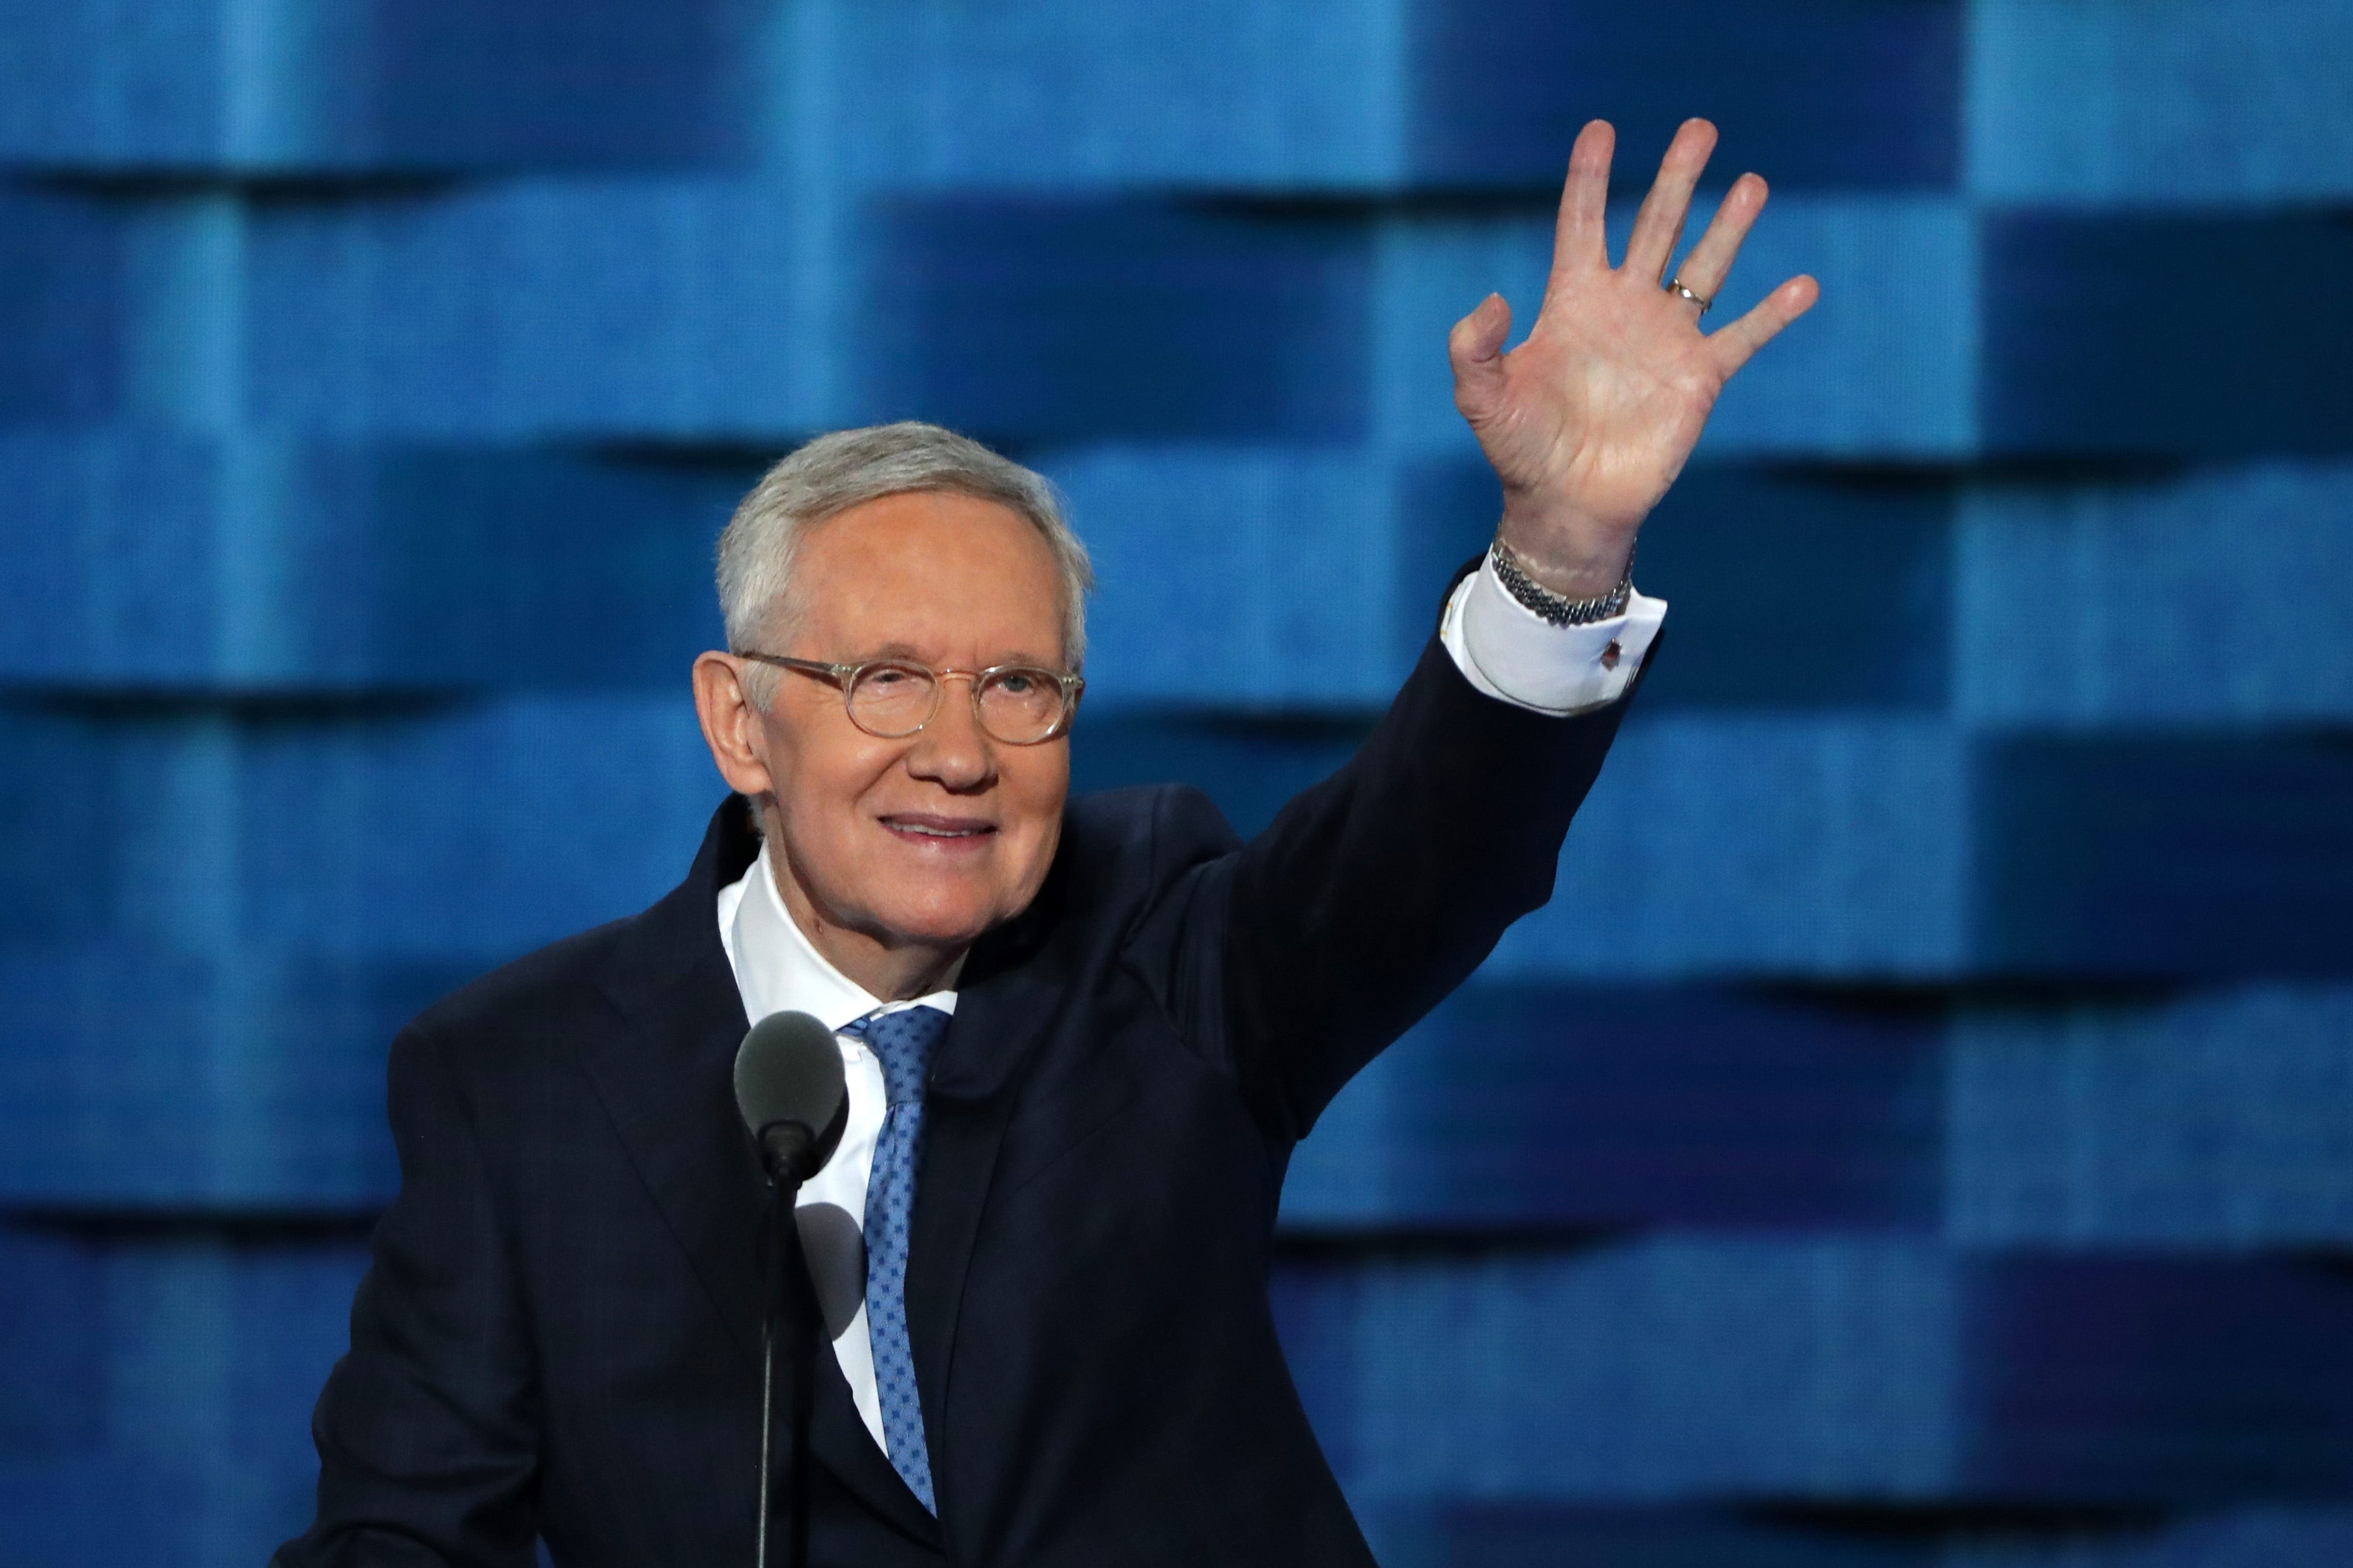 Harry Reid calls Trump worst president ever in NYT interview: 'Not even a close second'